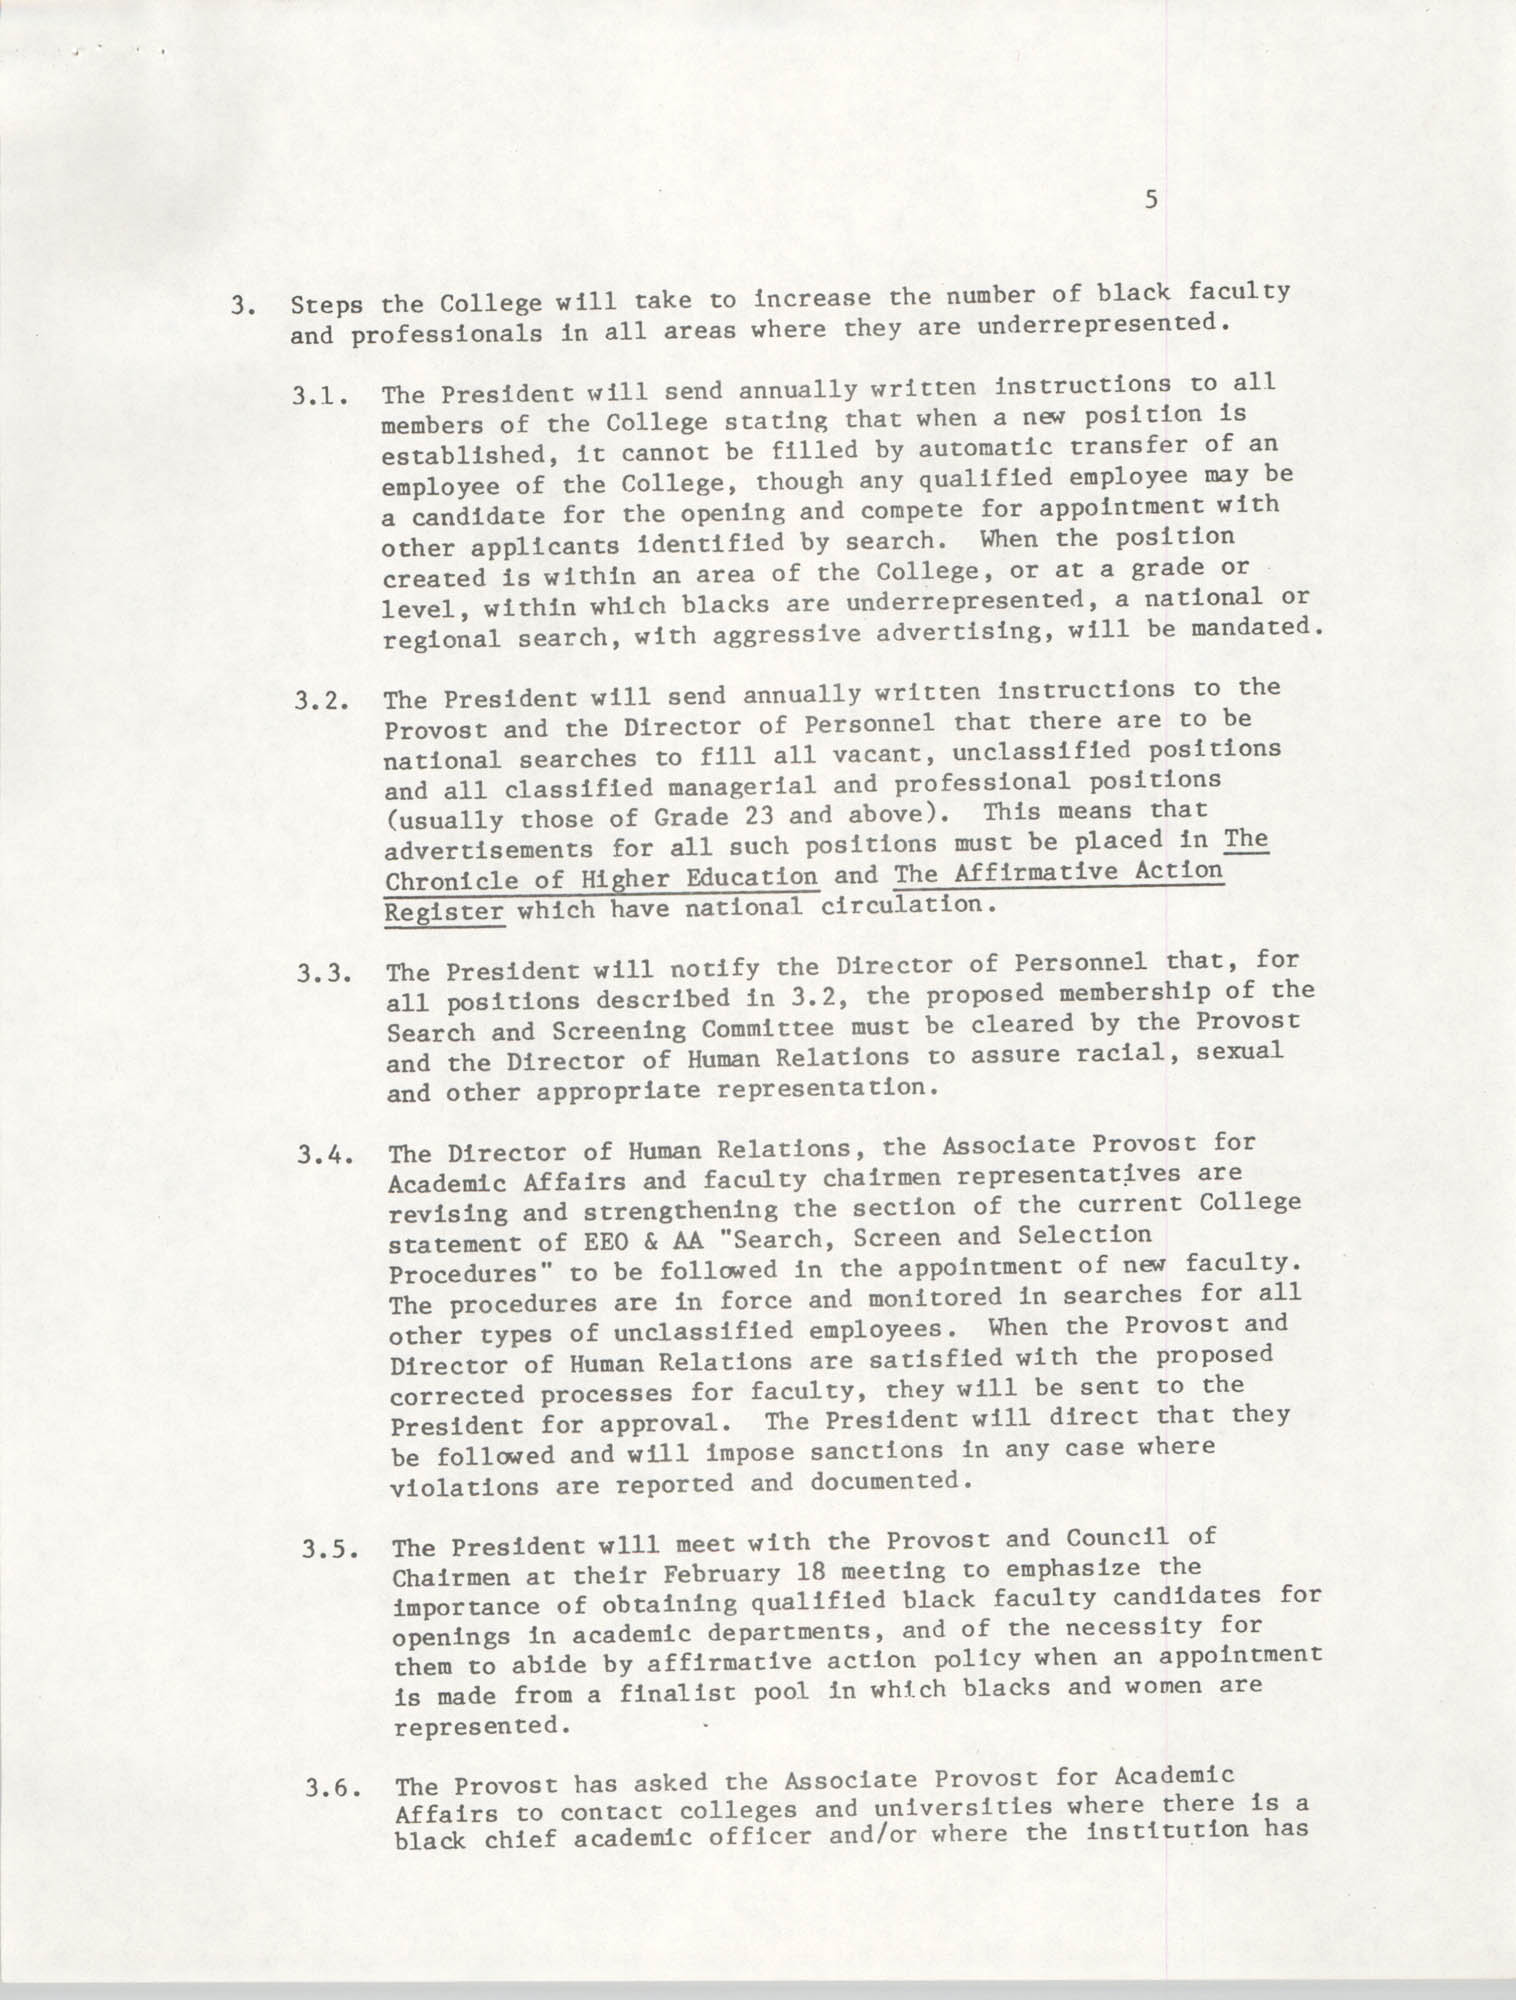 College of Charleston, Updated Summary of Desegregation Efforts, Page 5